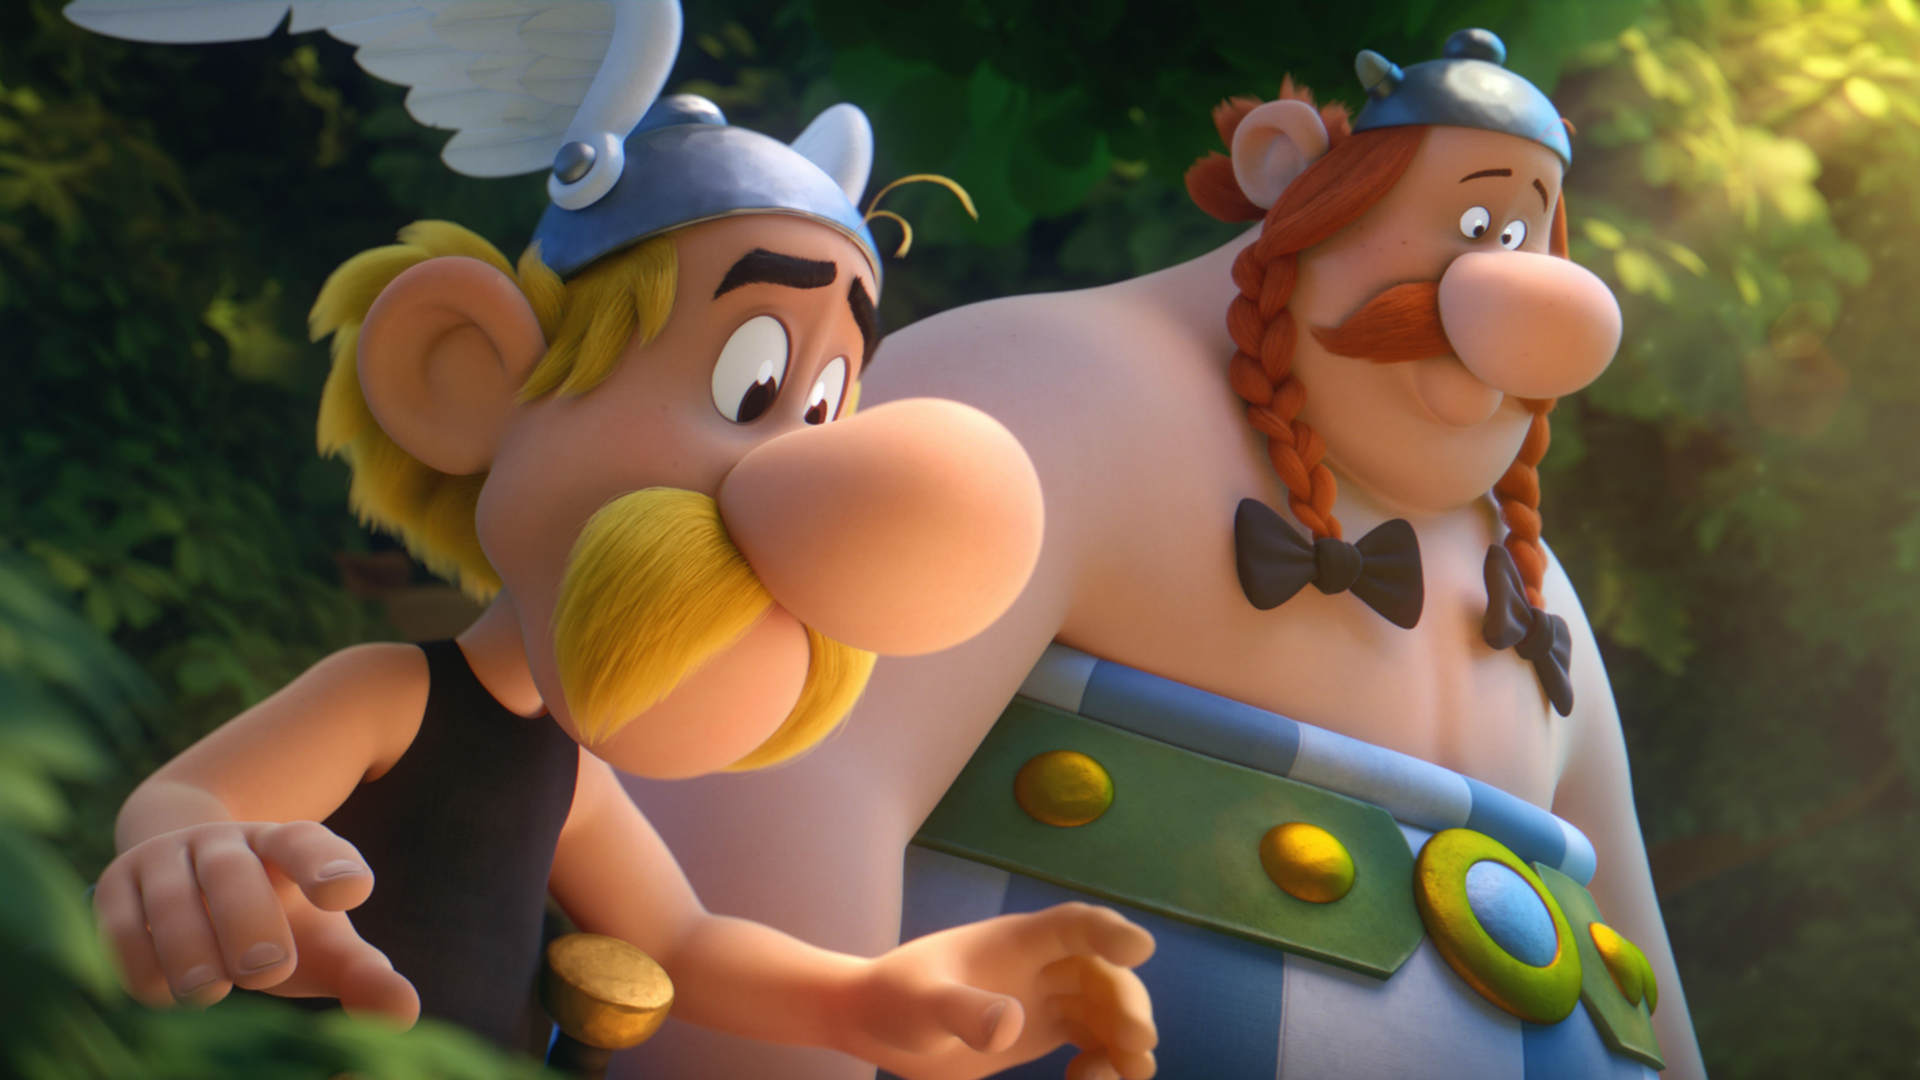 Astérix : Le Secret de la potion magiqued'Alexandre Astier, Louis Clichy - 34 M€ de dépenses en France